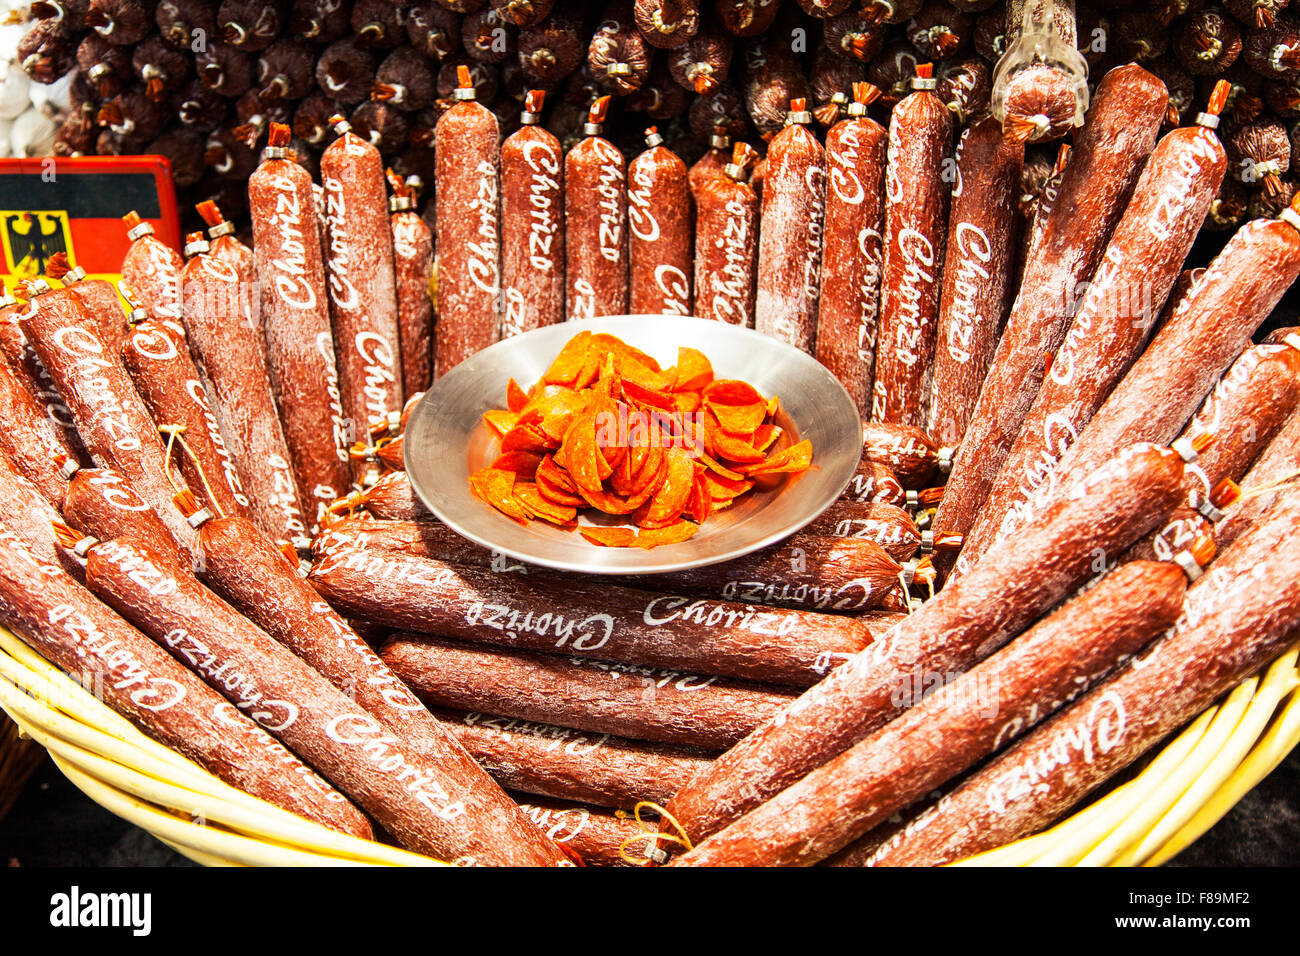 Chorizo sausage Spanish spicy sausages meat salami spiced meaty snack starter delicatessen display unhealthy food - Stock Image